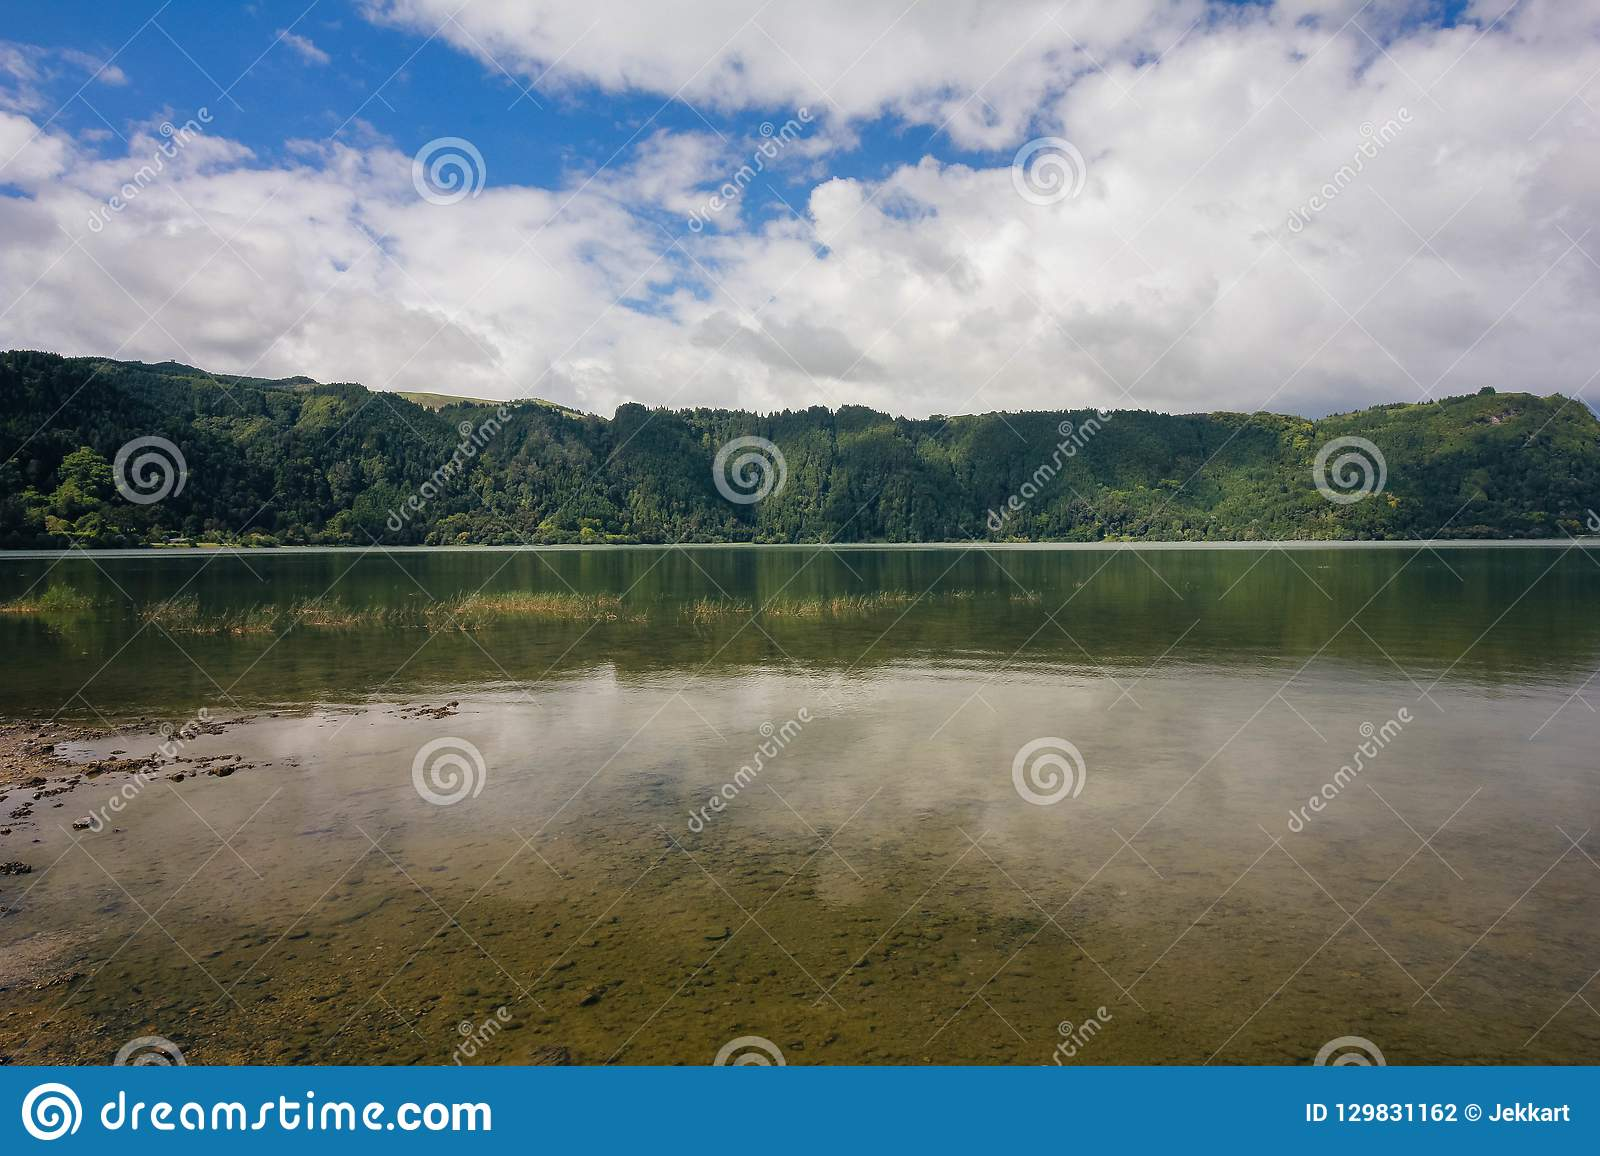 Overview lake, blue sky, clouds, trees Jose do Canto Forest Garden, Furnas, Sao Miguel, Azores Portugal